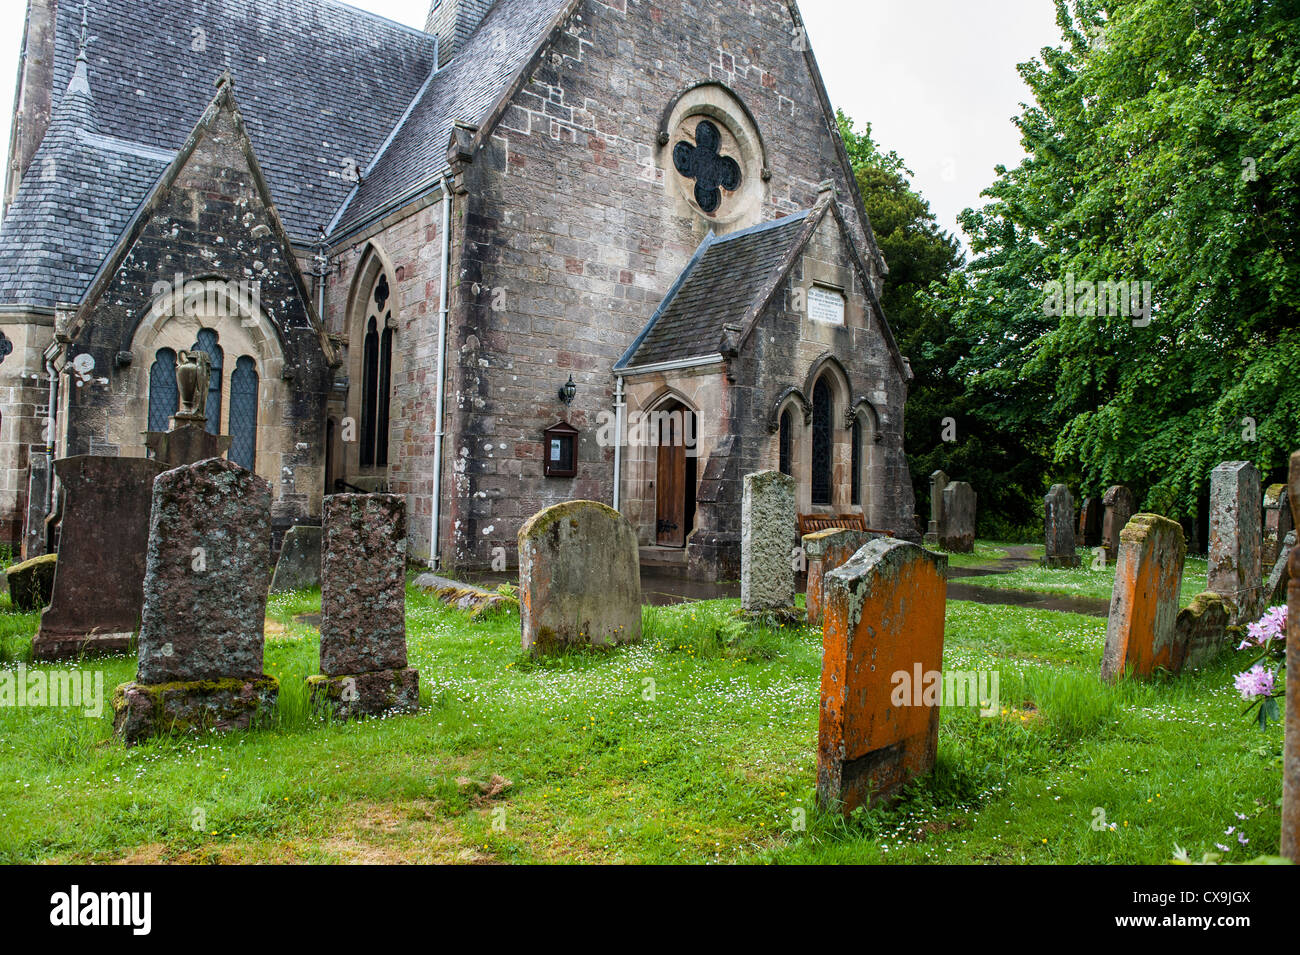 Village of Luss, on Loch Lomond, renovated and repaired - Stock Image